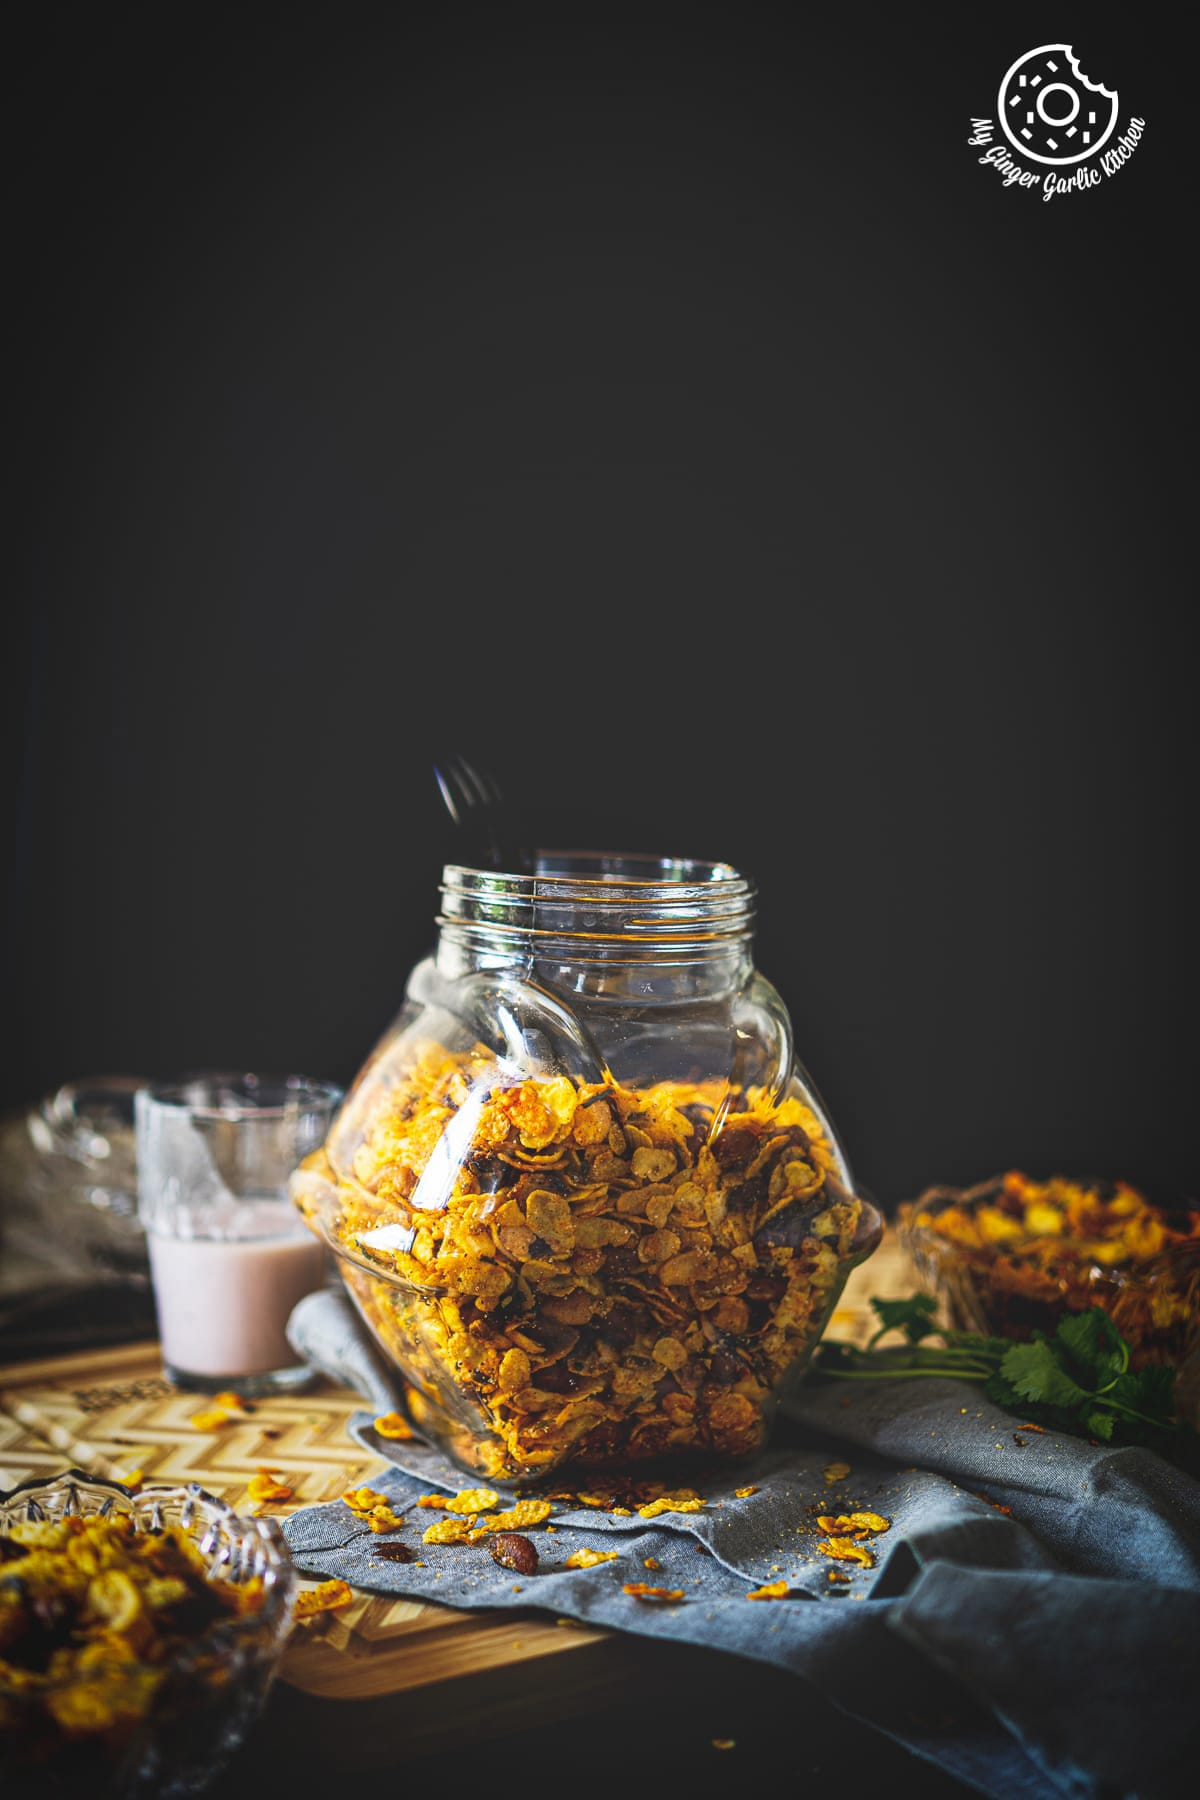 a jar of roasted cornflakes chivda namkeen kept on a wooden board